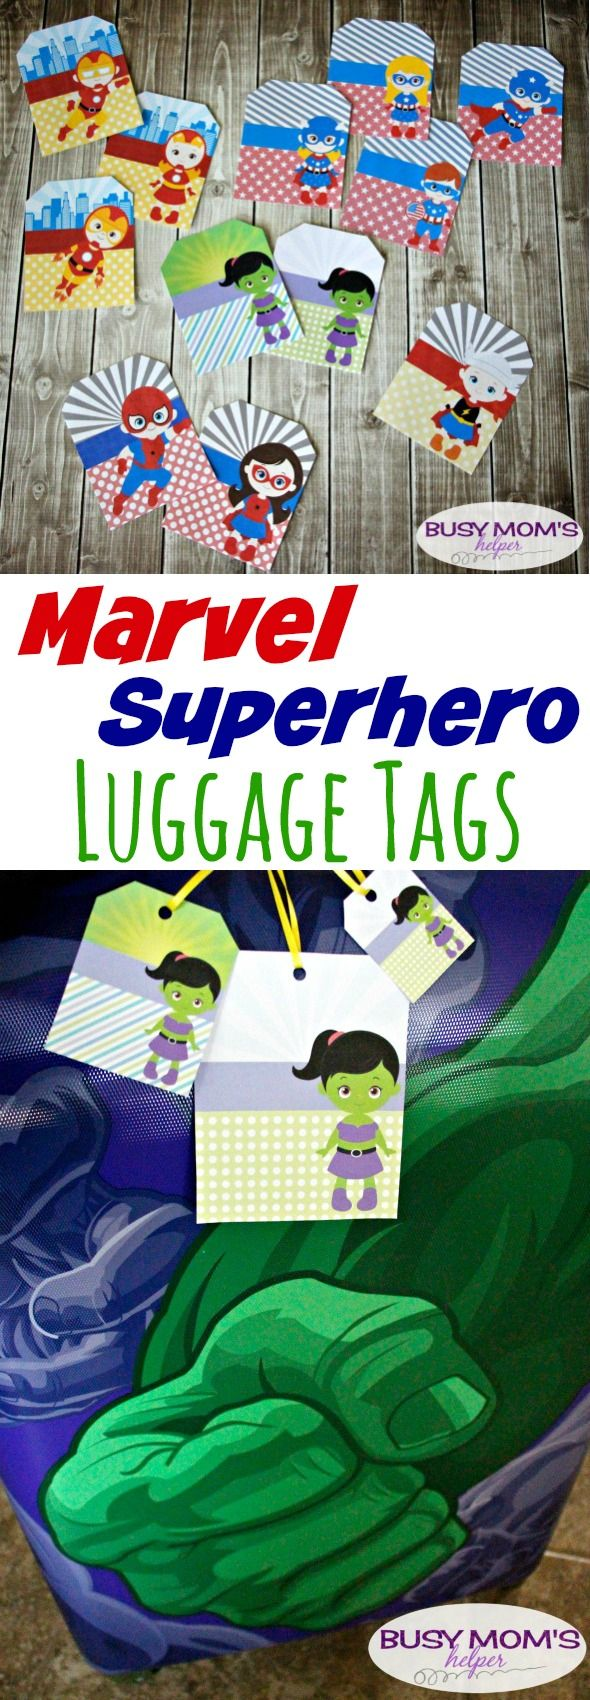 67 best SUPER HEROES images on Pinterest | Carnivals, Costumes and ...